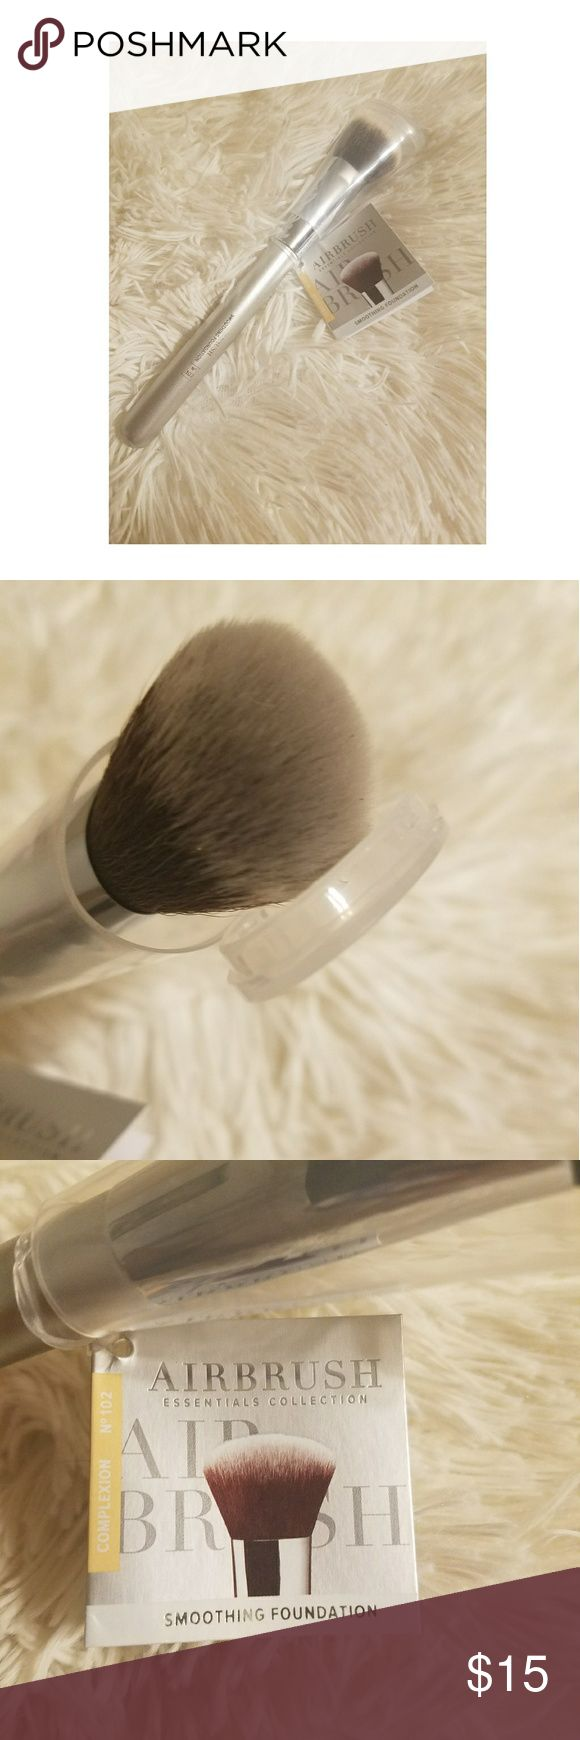 IT cosmetics airbrush foundation brush Brand new. Never used. Super soft brush! Exclusively sold at ulta. IT cosmetics Makeup Brushes & Tools